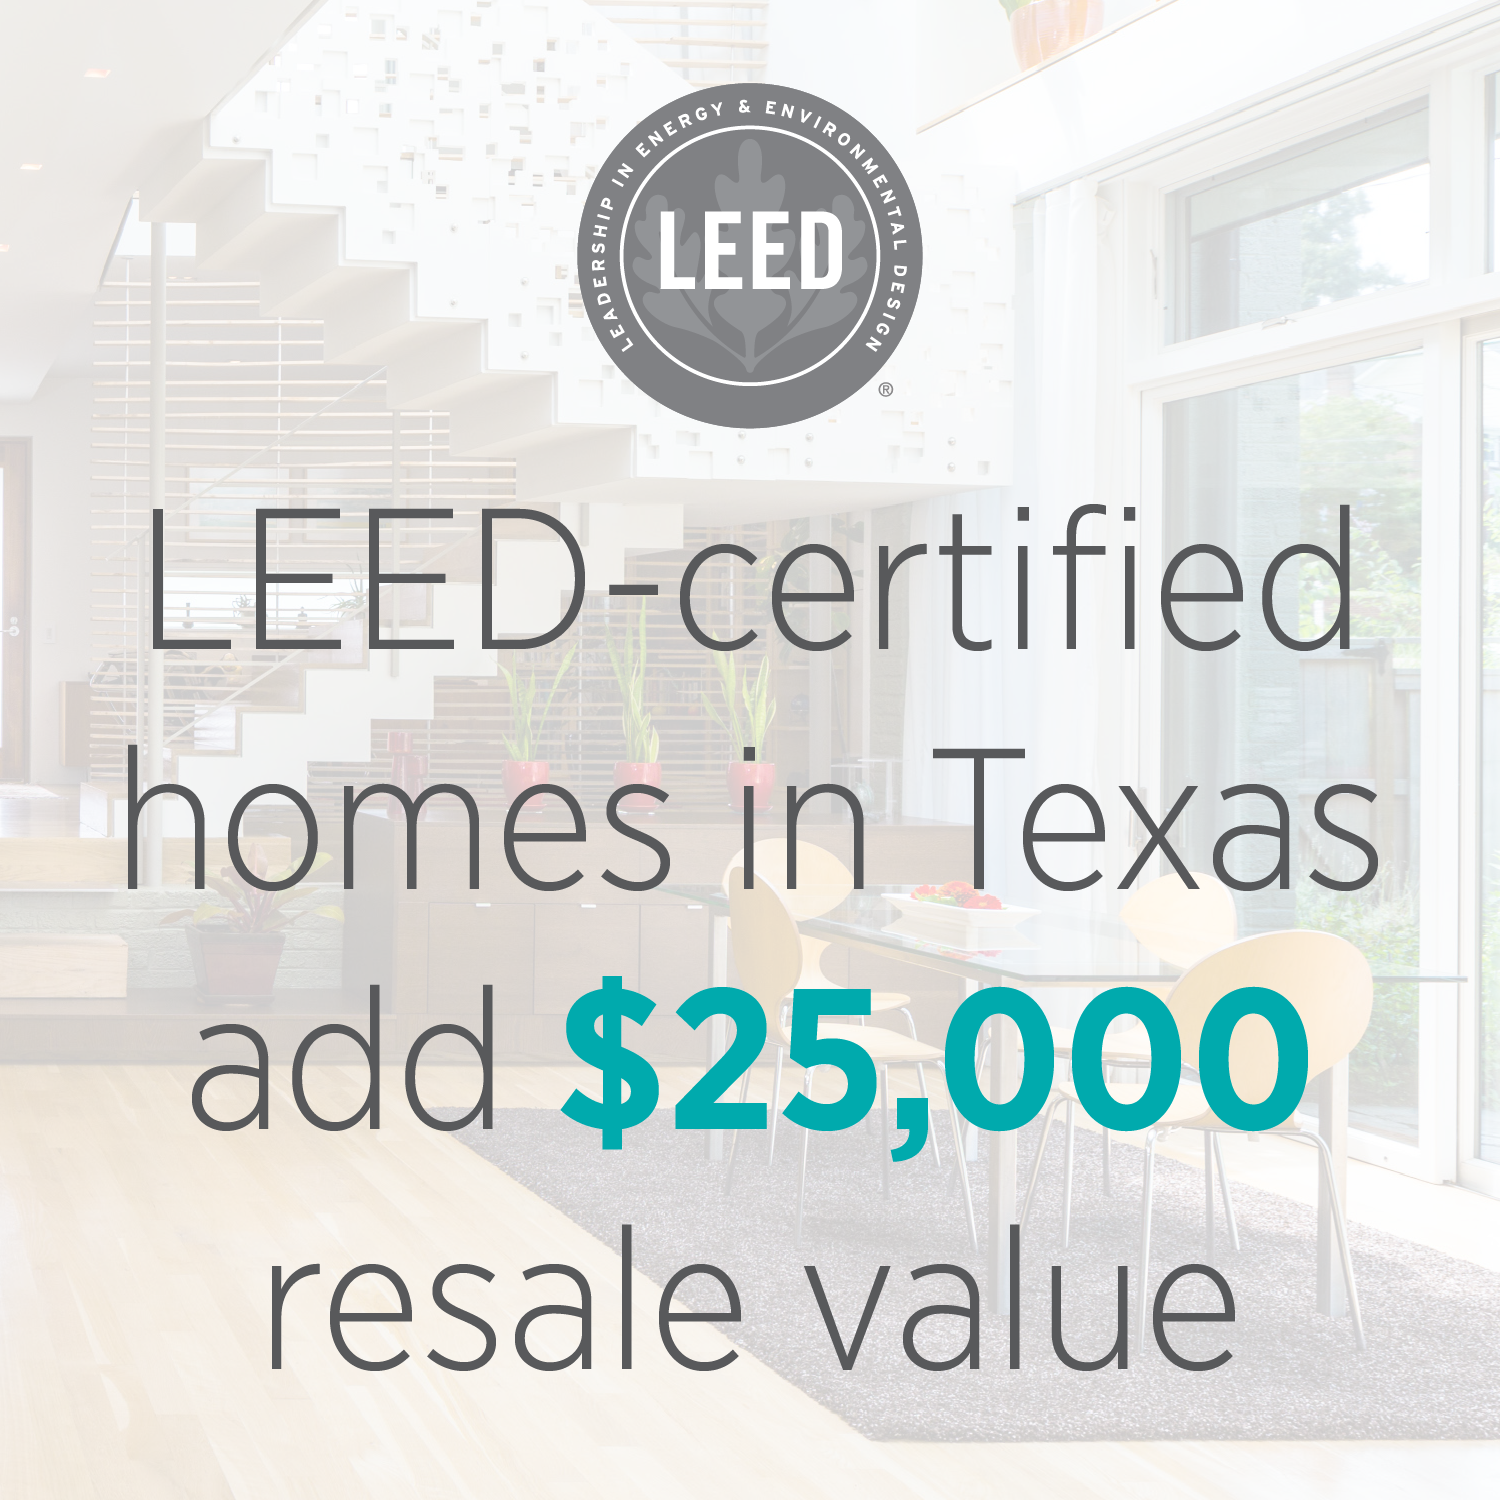 Leed homes in austin round rock offer 25 000 more in for Leed for homes rating system